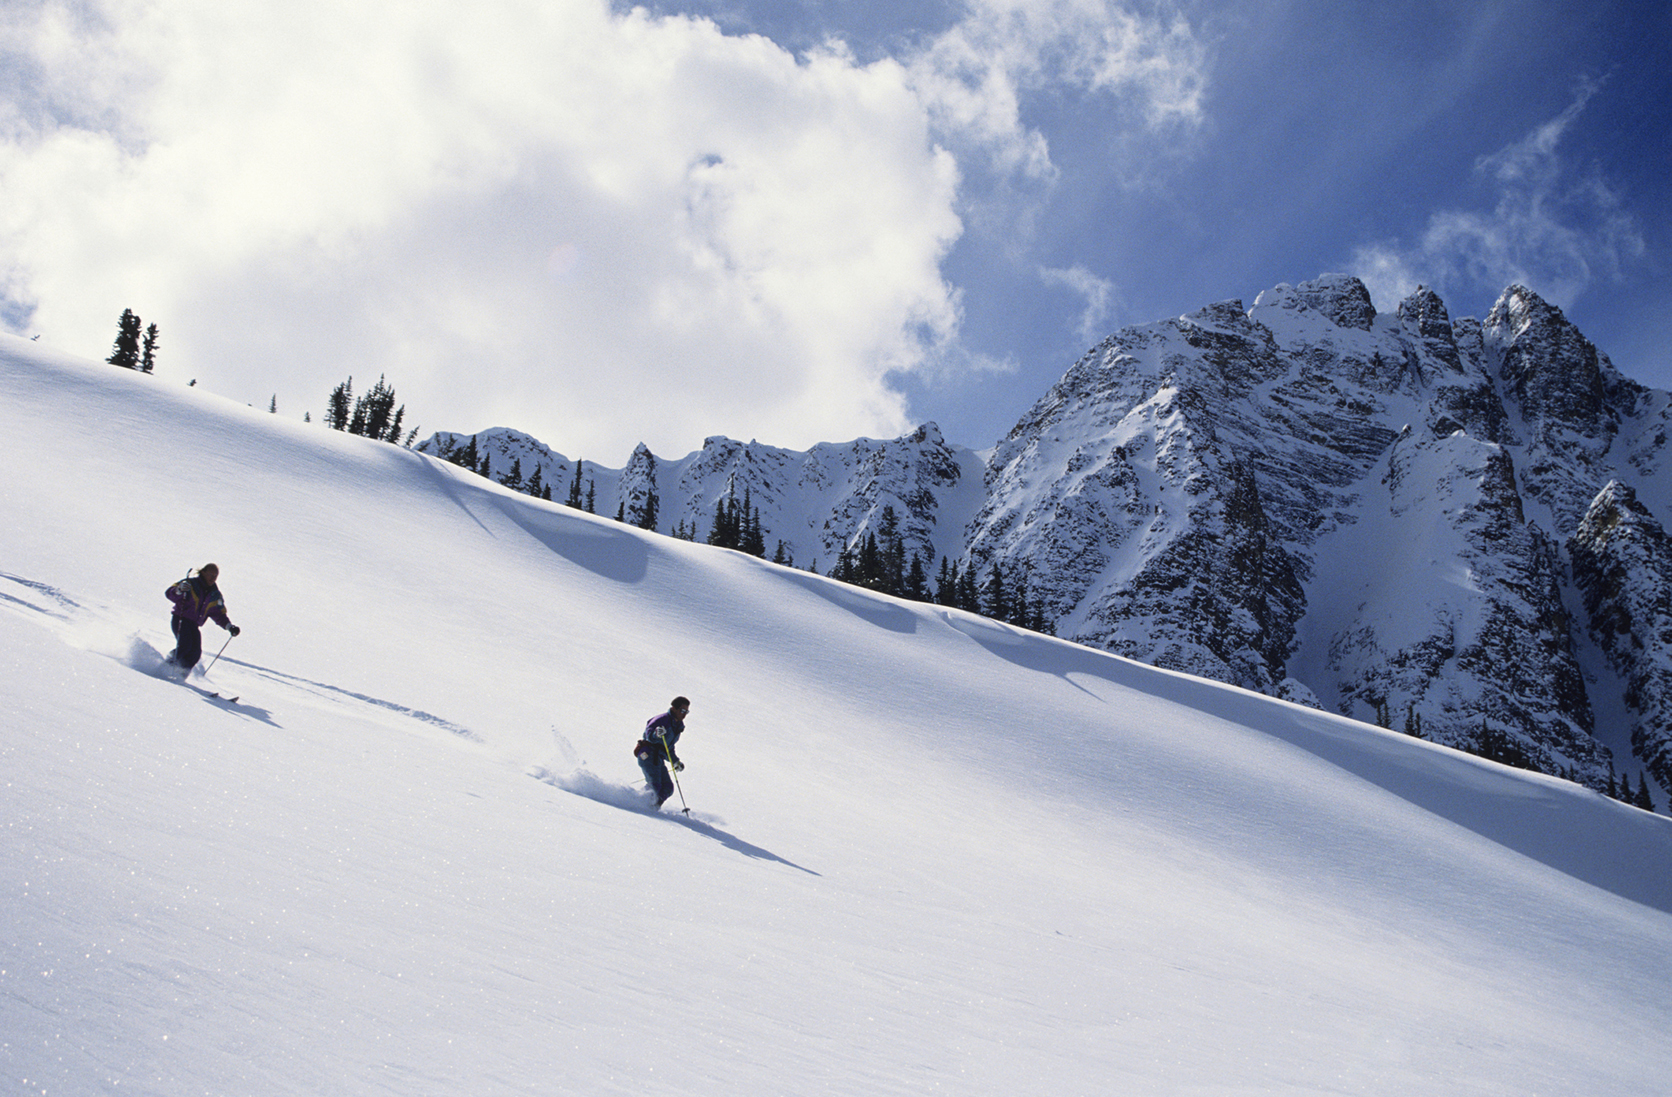 Two skiers take on Jasper National Park